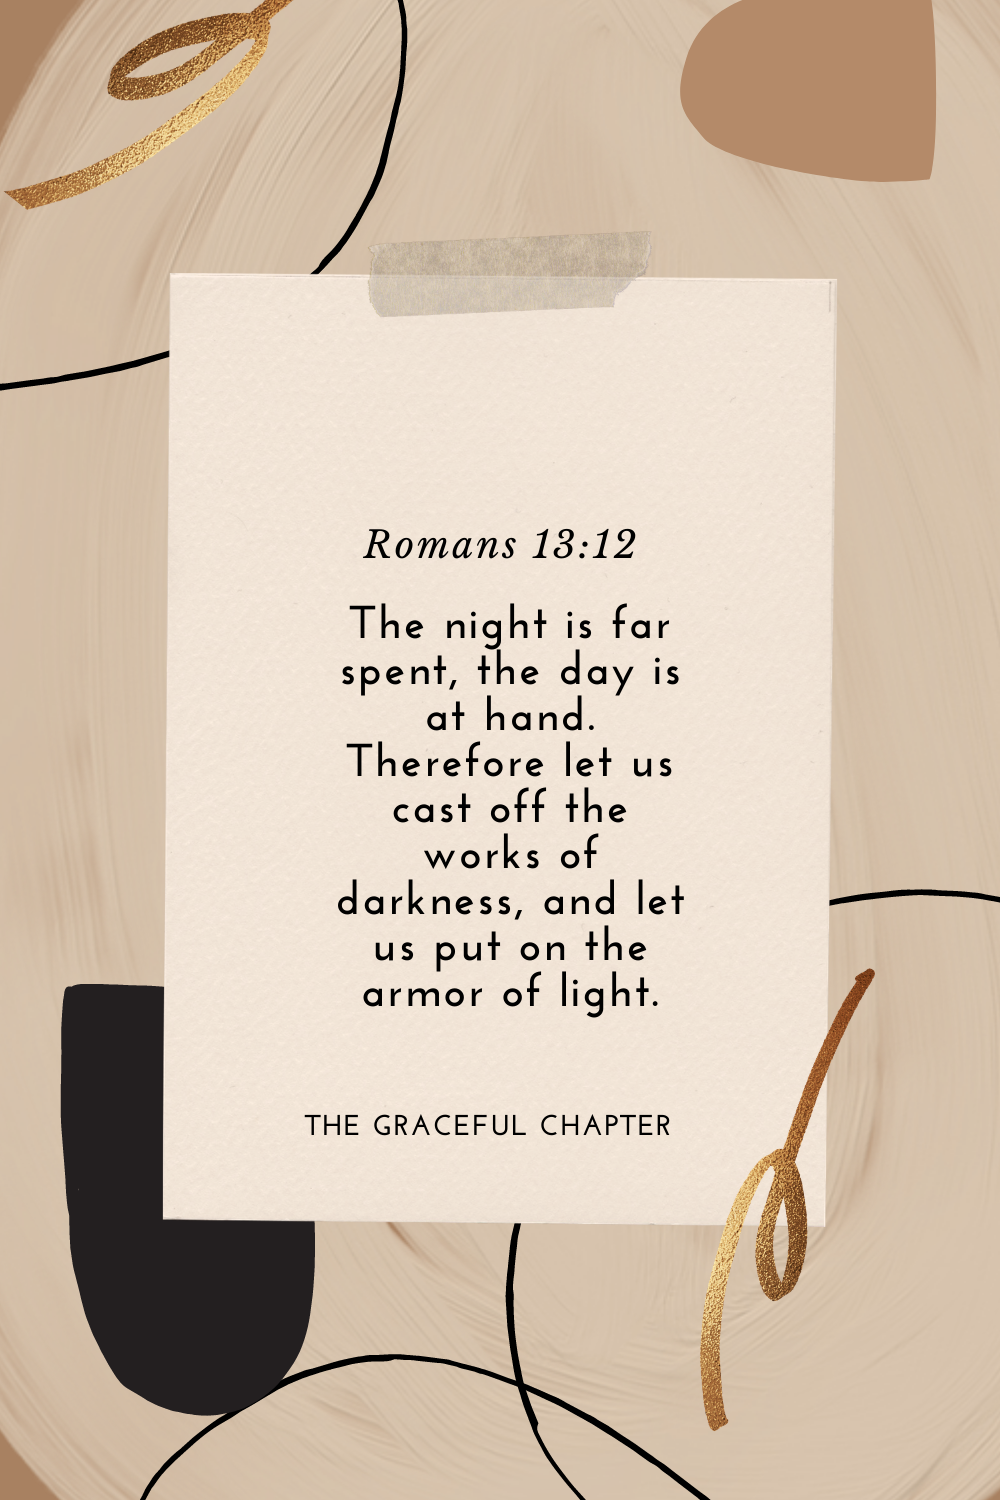 The night is far spent, the day is at hand. Therefore let us cast off the works of darkness, and let us put on the armor of light. Romans 13:12